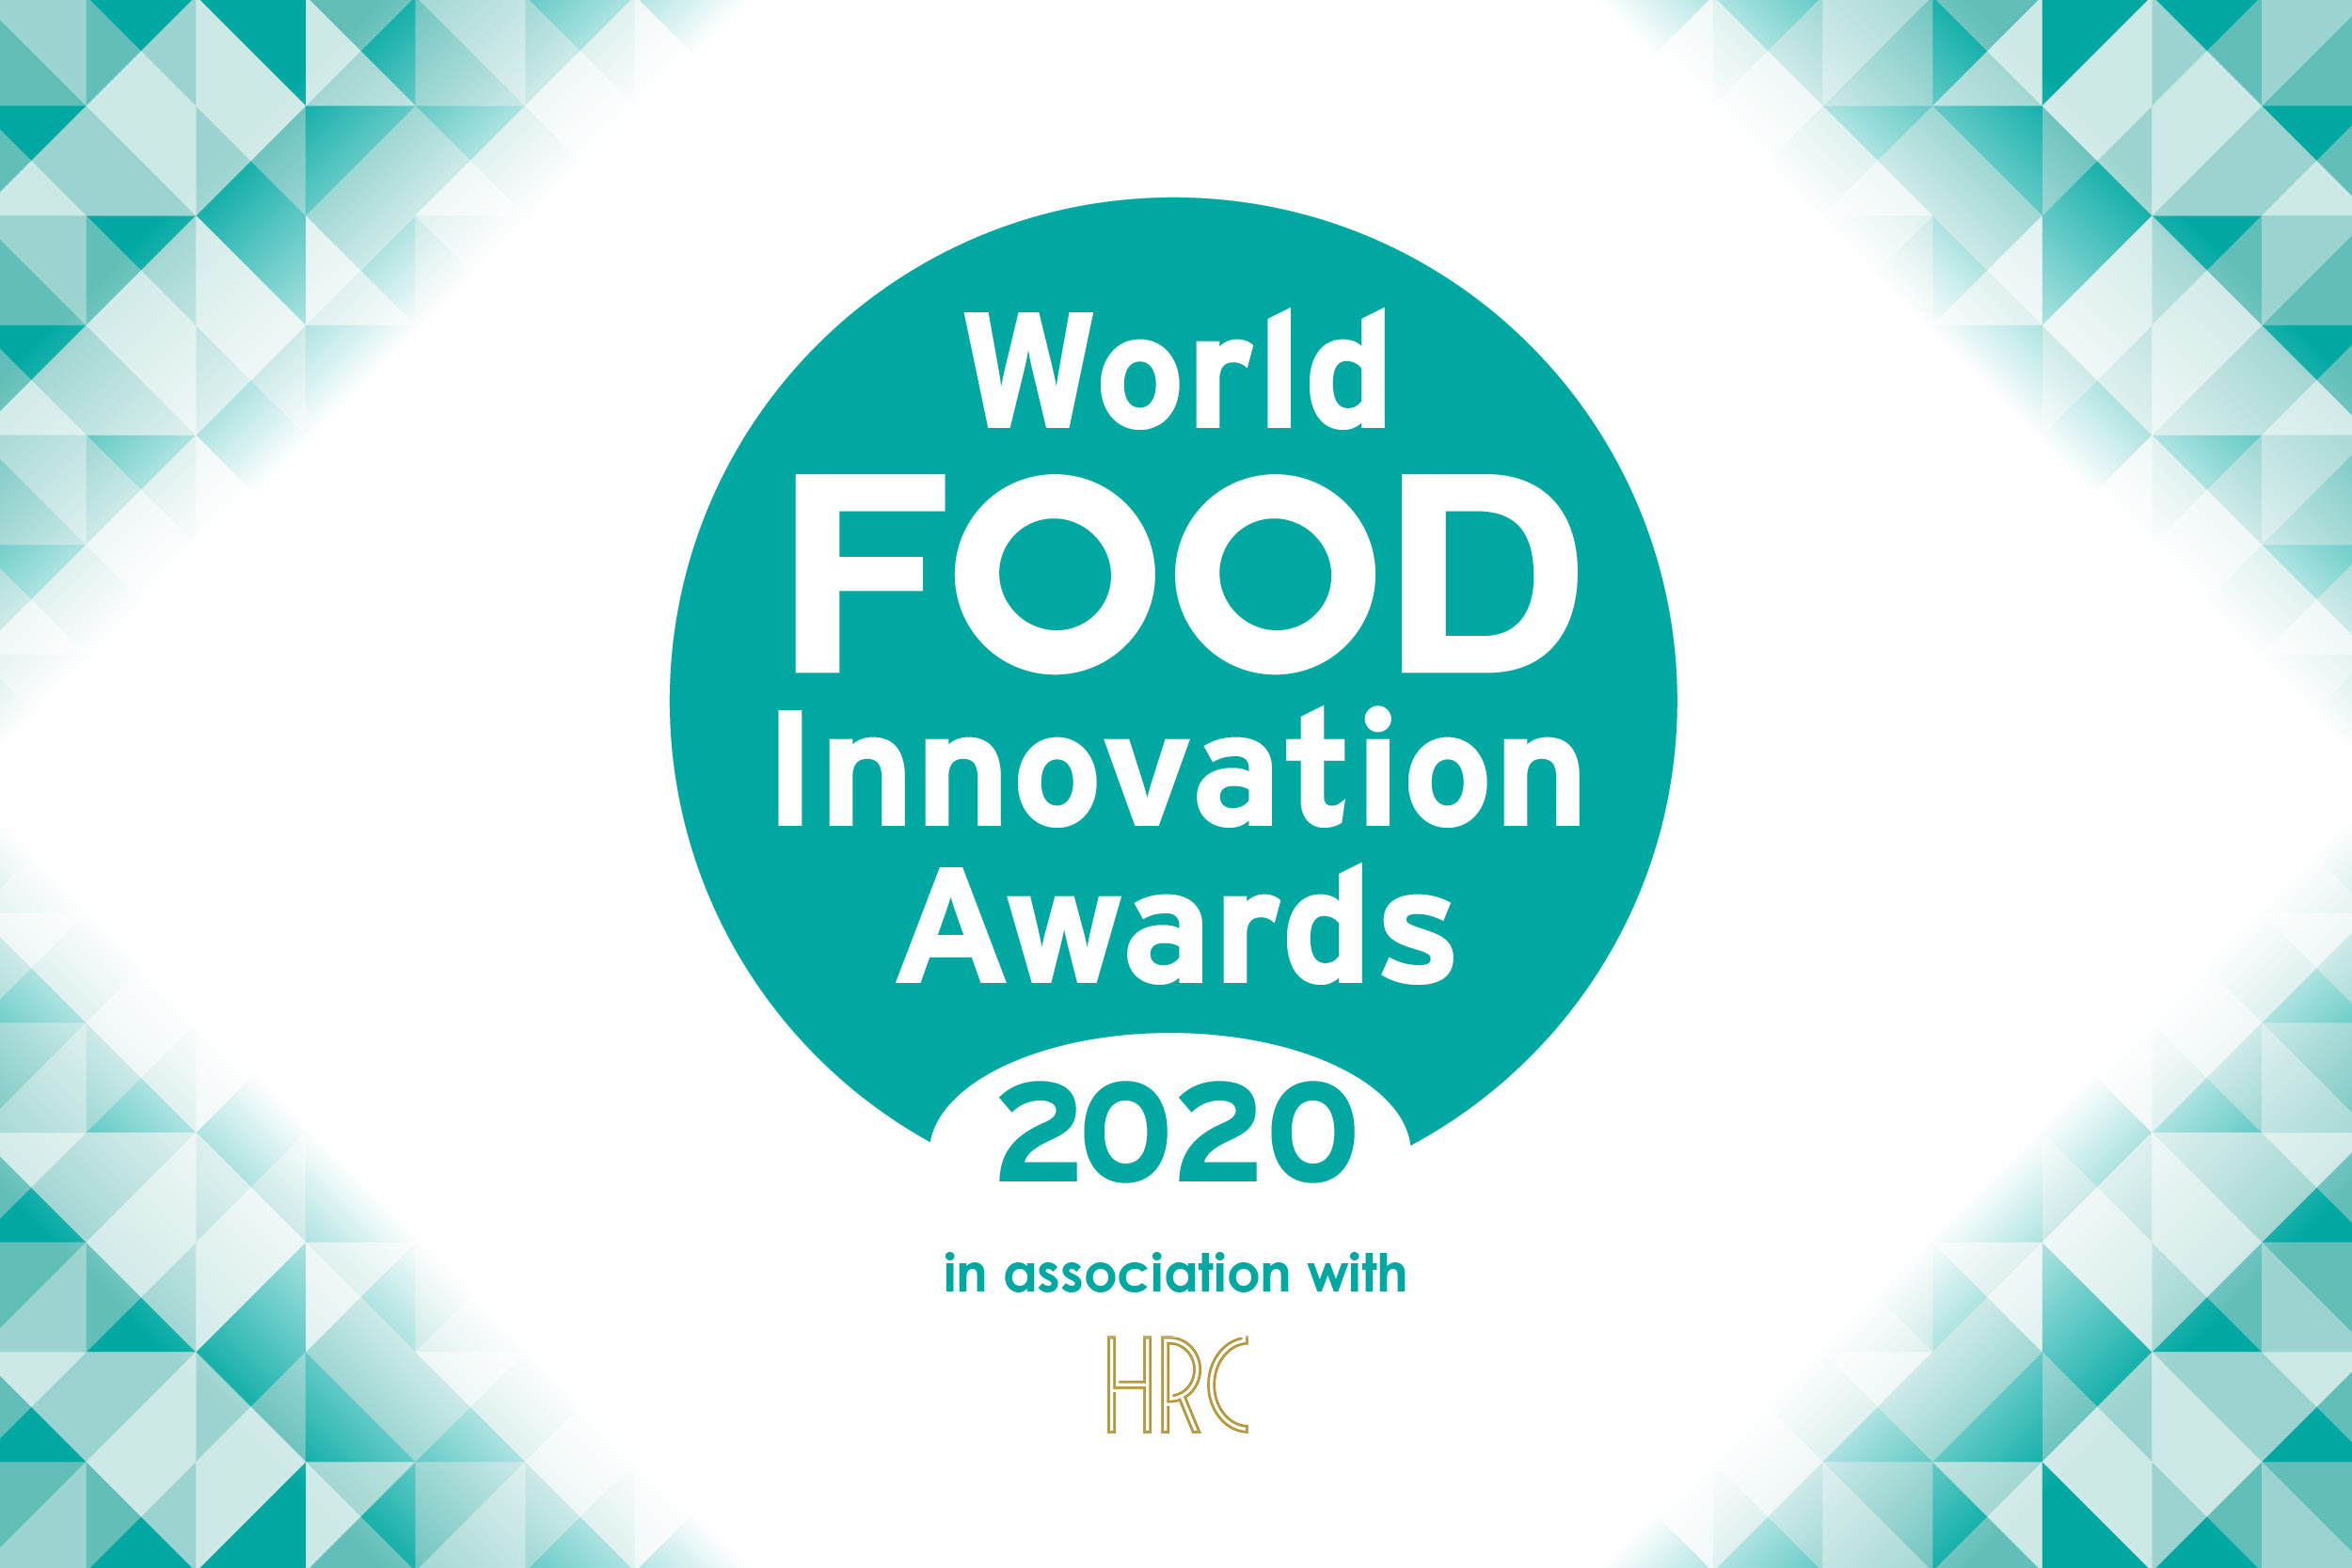 World Food Innovation Awards 2020: Winners revealed